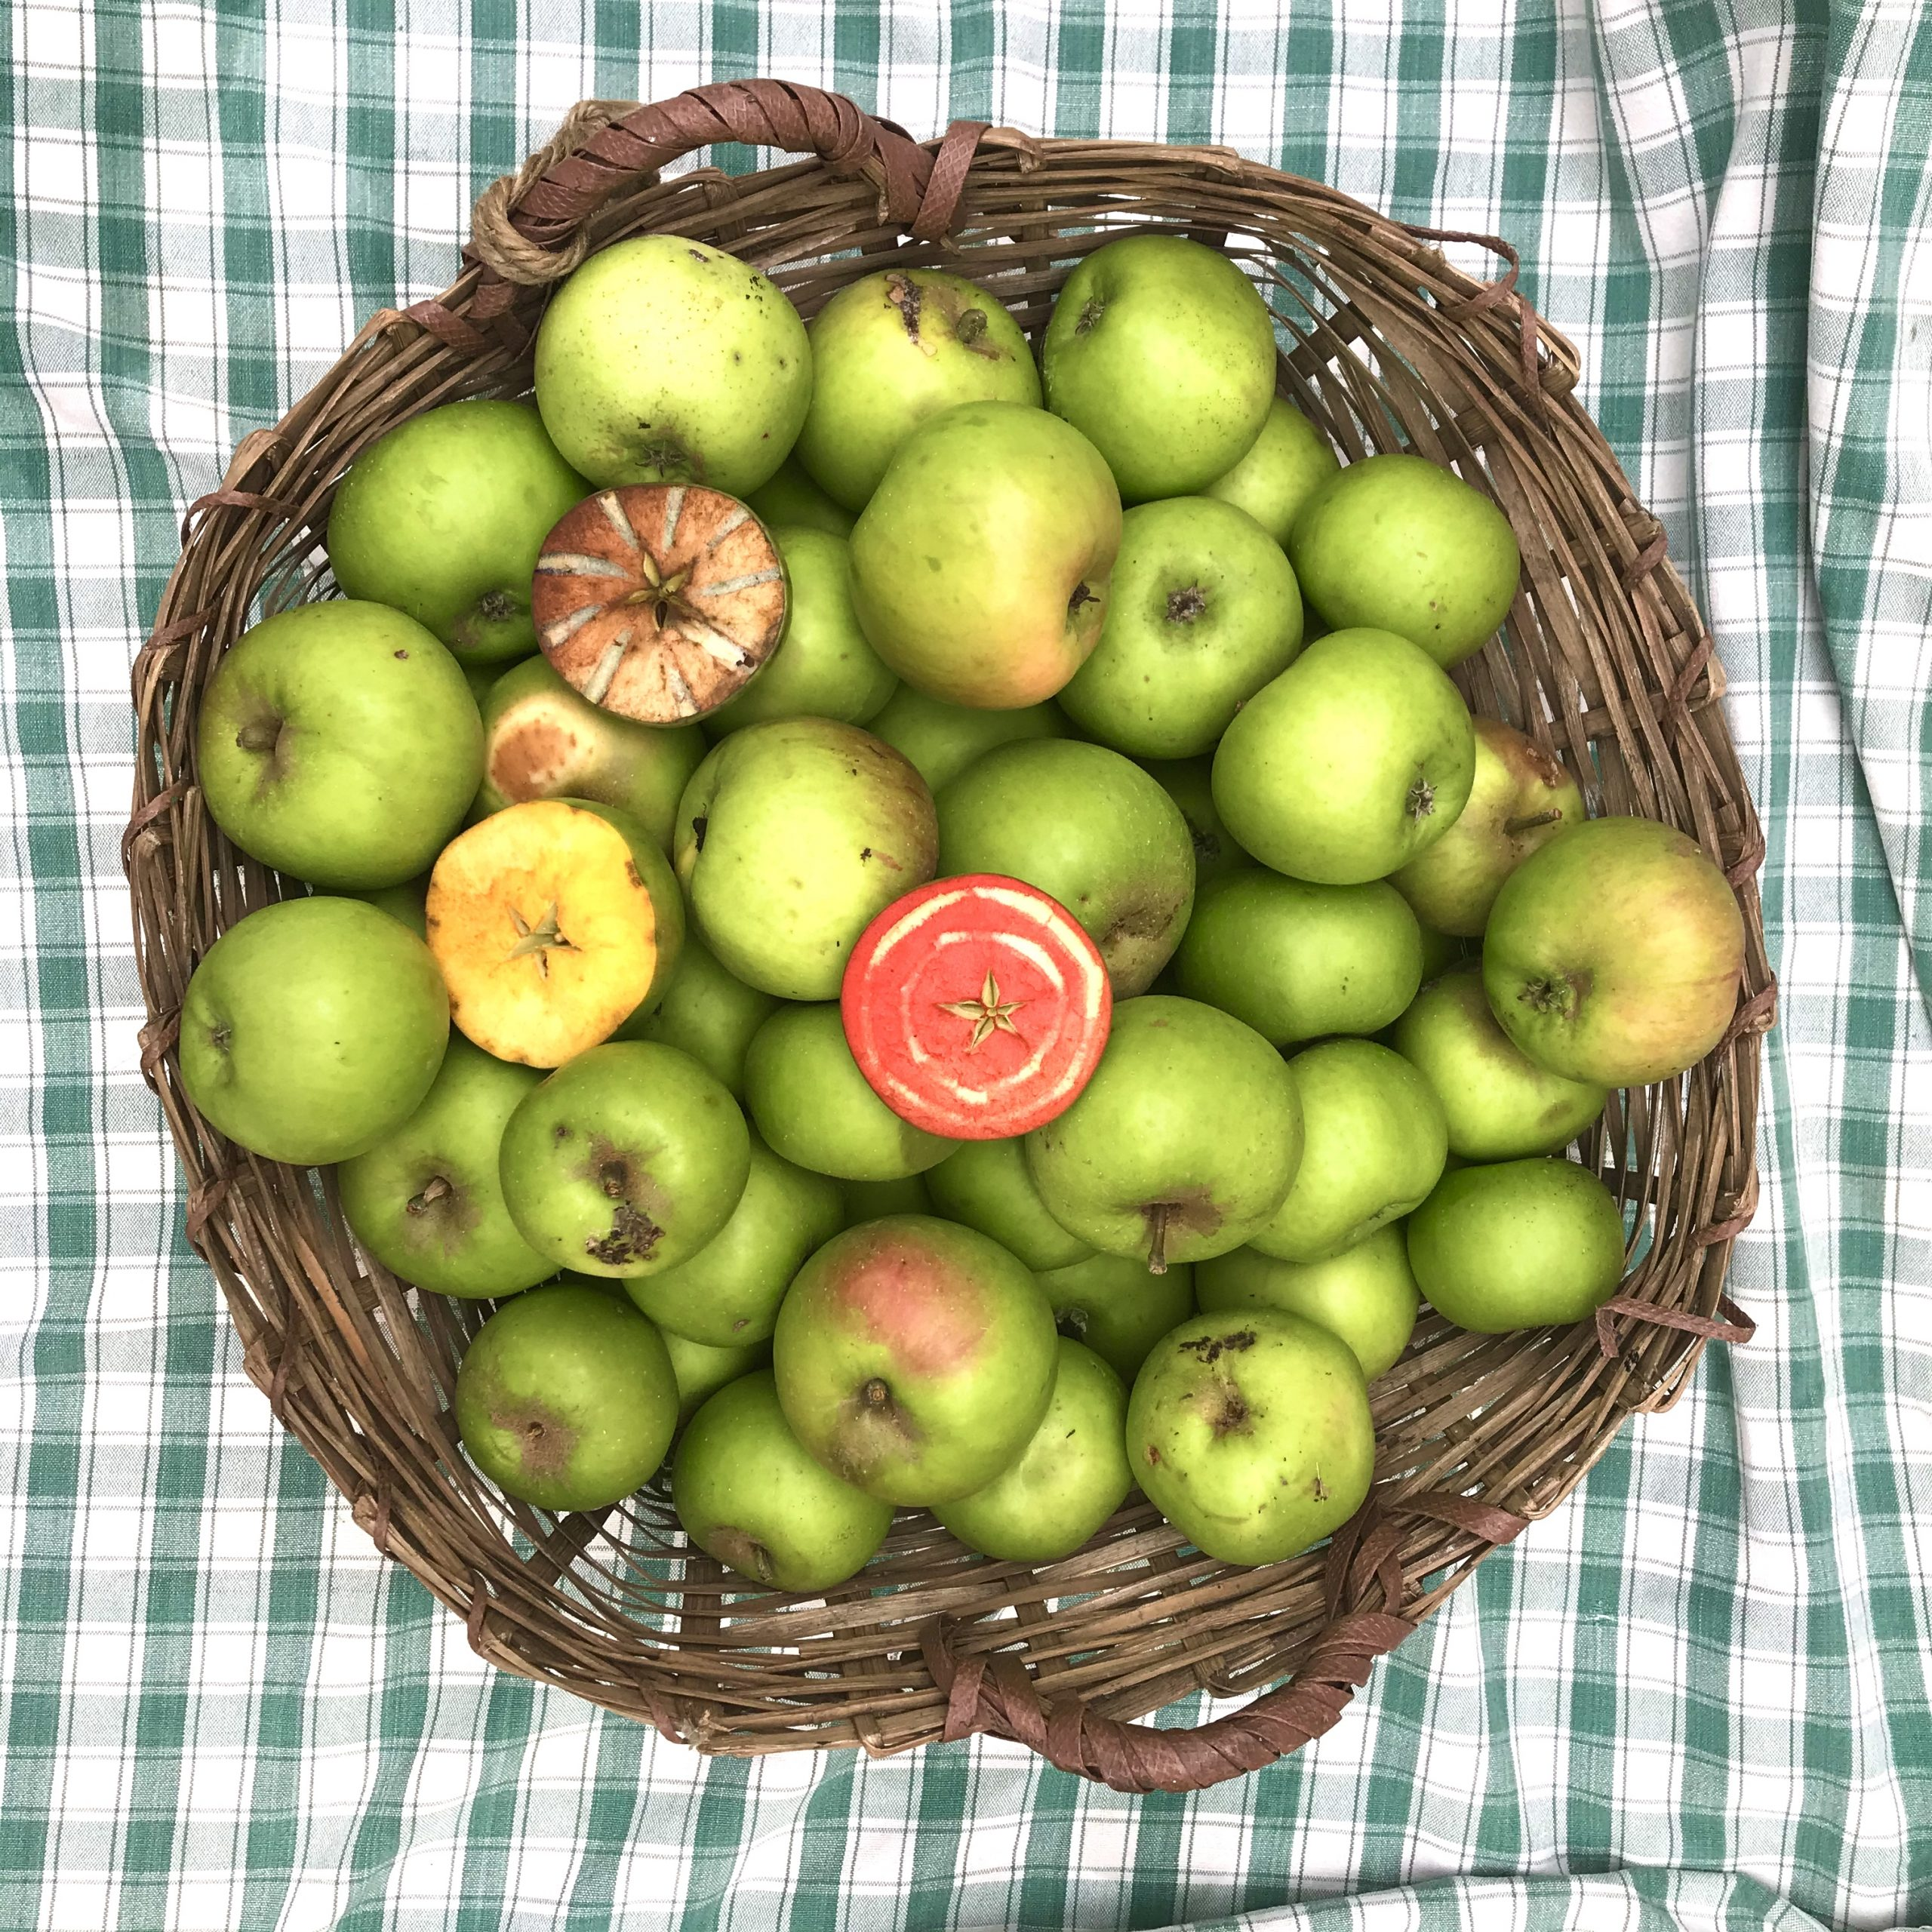 A basket of green apples on a chequered cloth